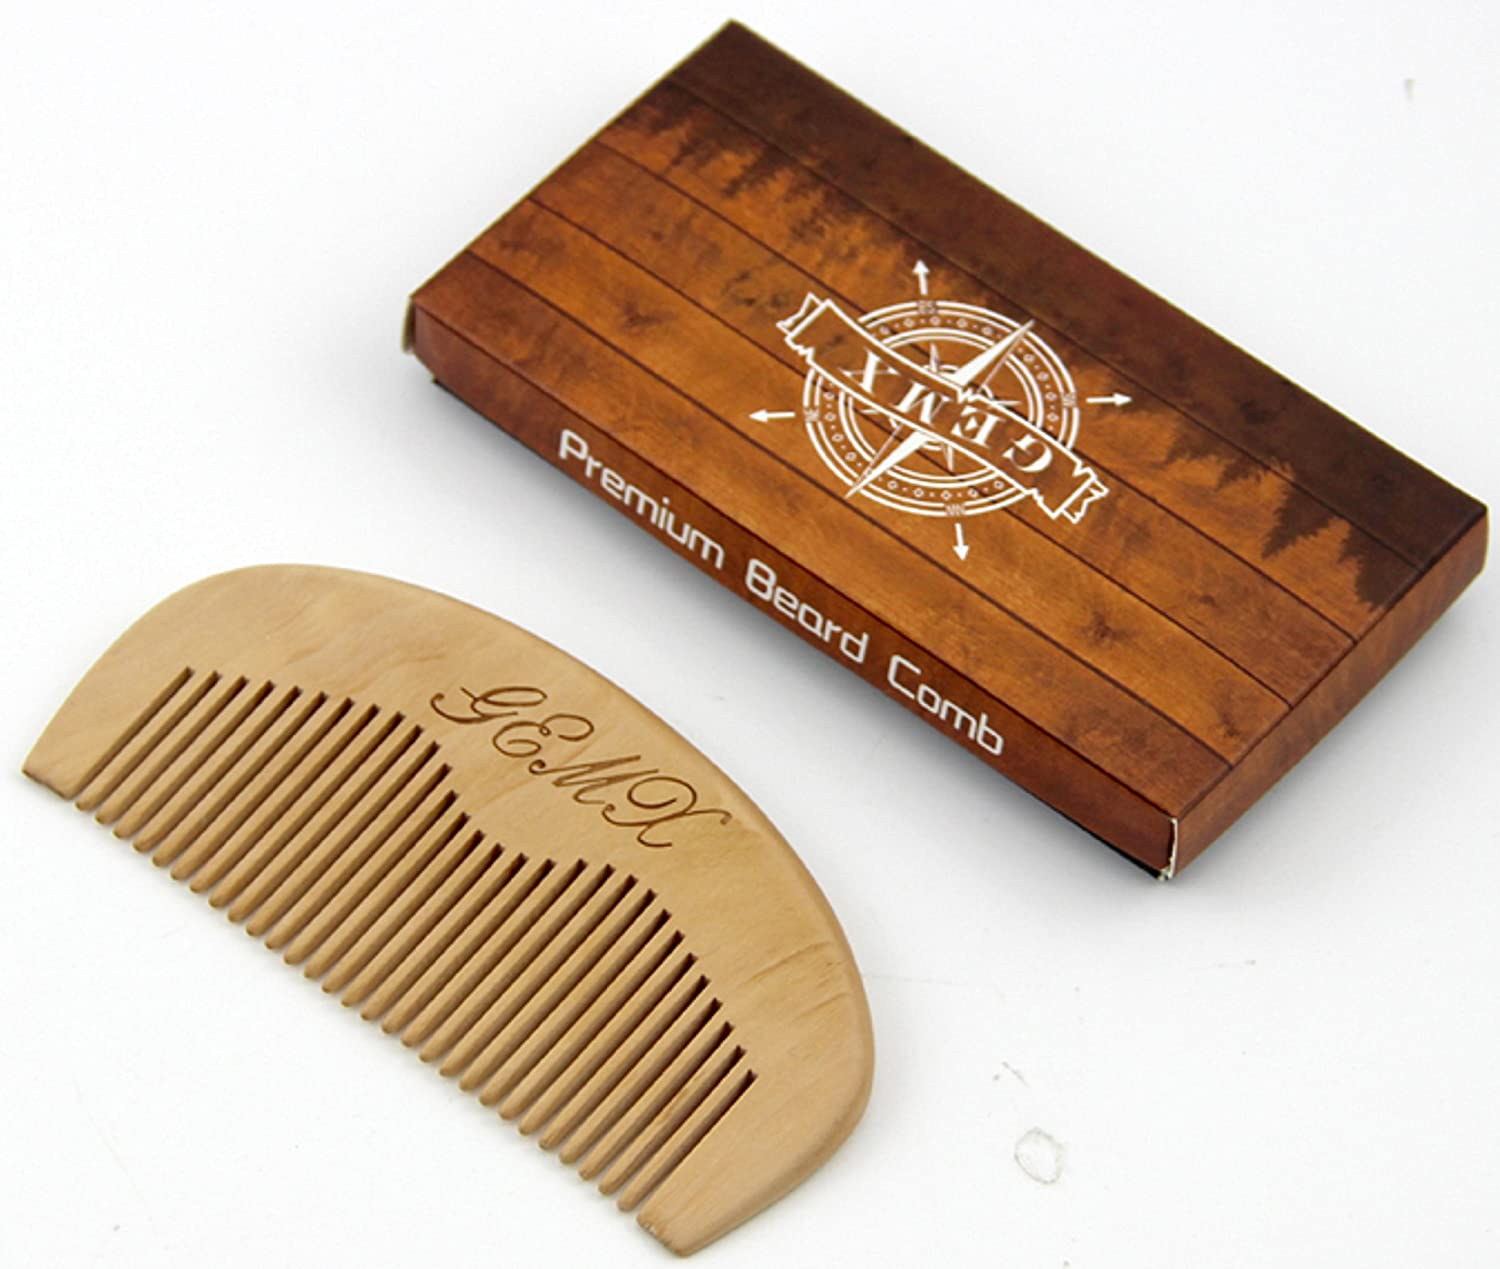 Beard Moustache Wooden Comb Baby Anti static Wide teeth Curly hair Men Women Gemx FL 01